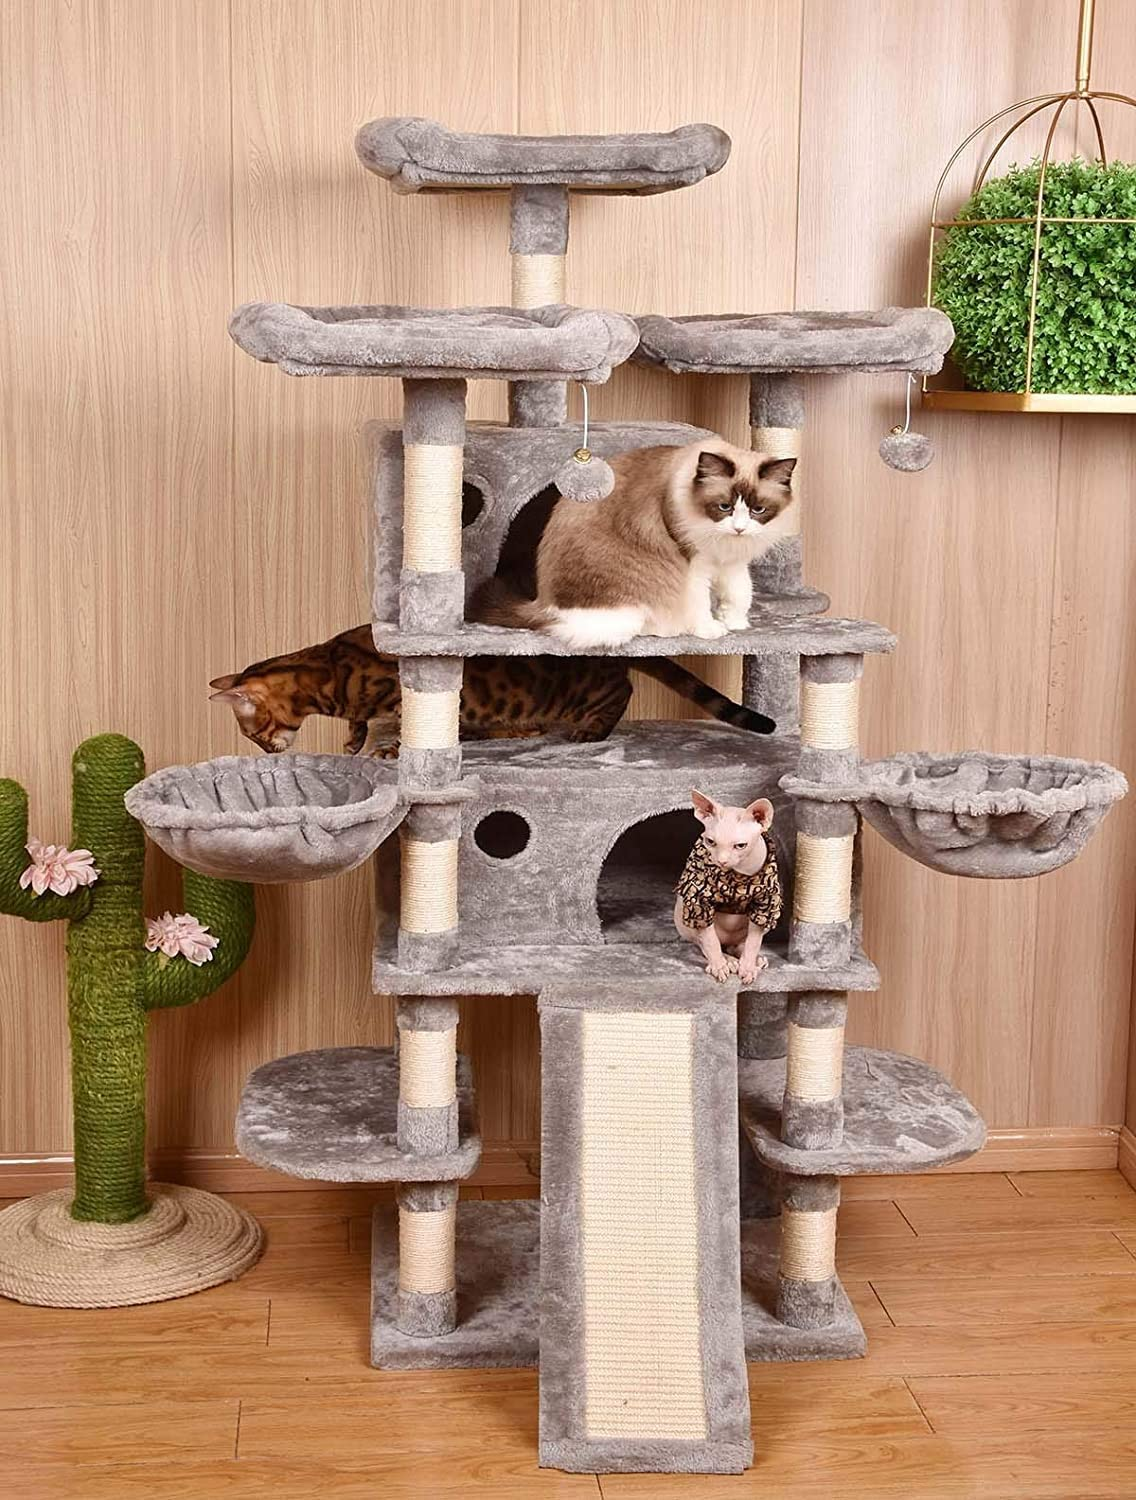 7. Amolife 68 Inch Multi-Level Cat Tree King/X-Large Size Cat Tower